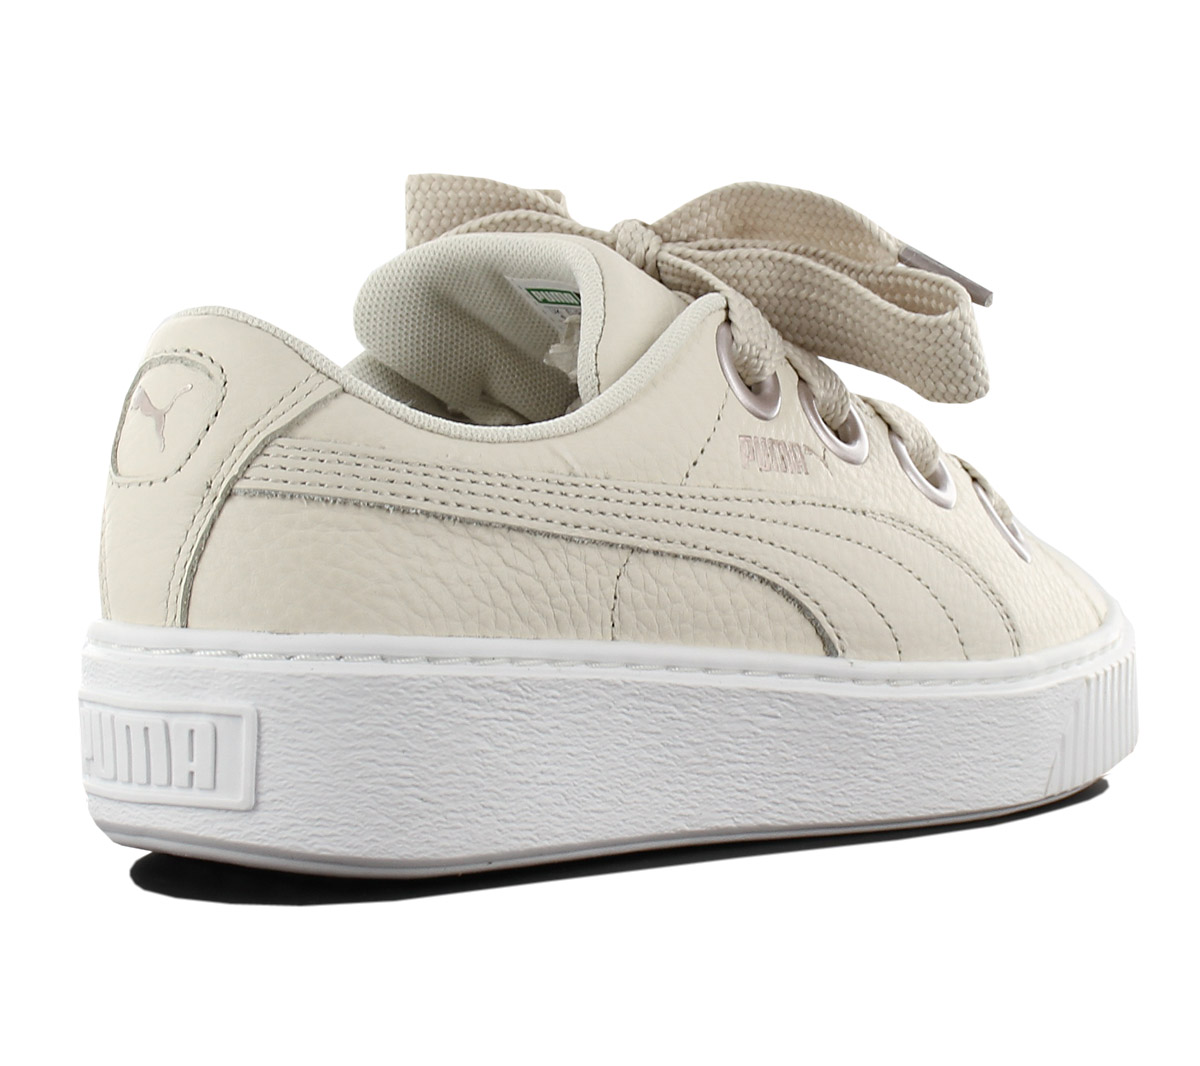 0c5658b42ed3bc NEW Puma Platform Kiss Leather 366460-02 Women  s Shoes Trainers ...